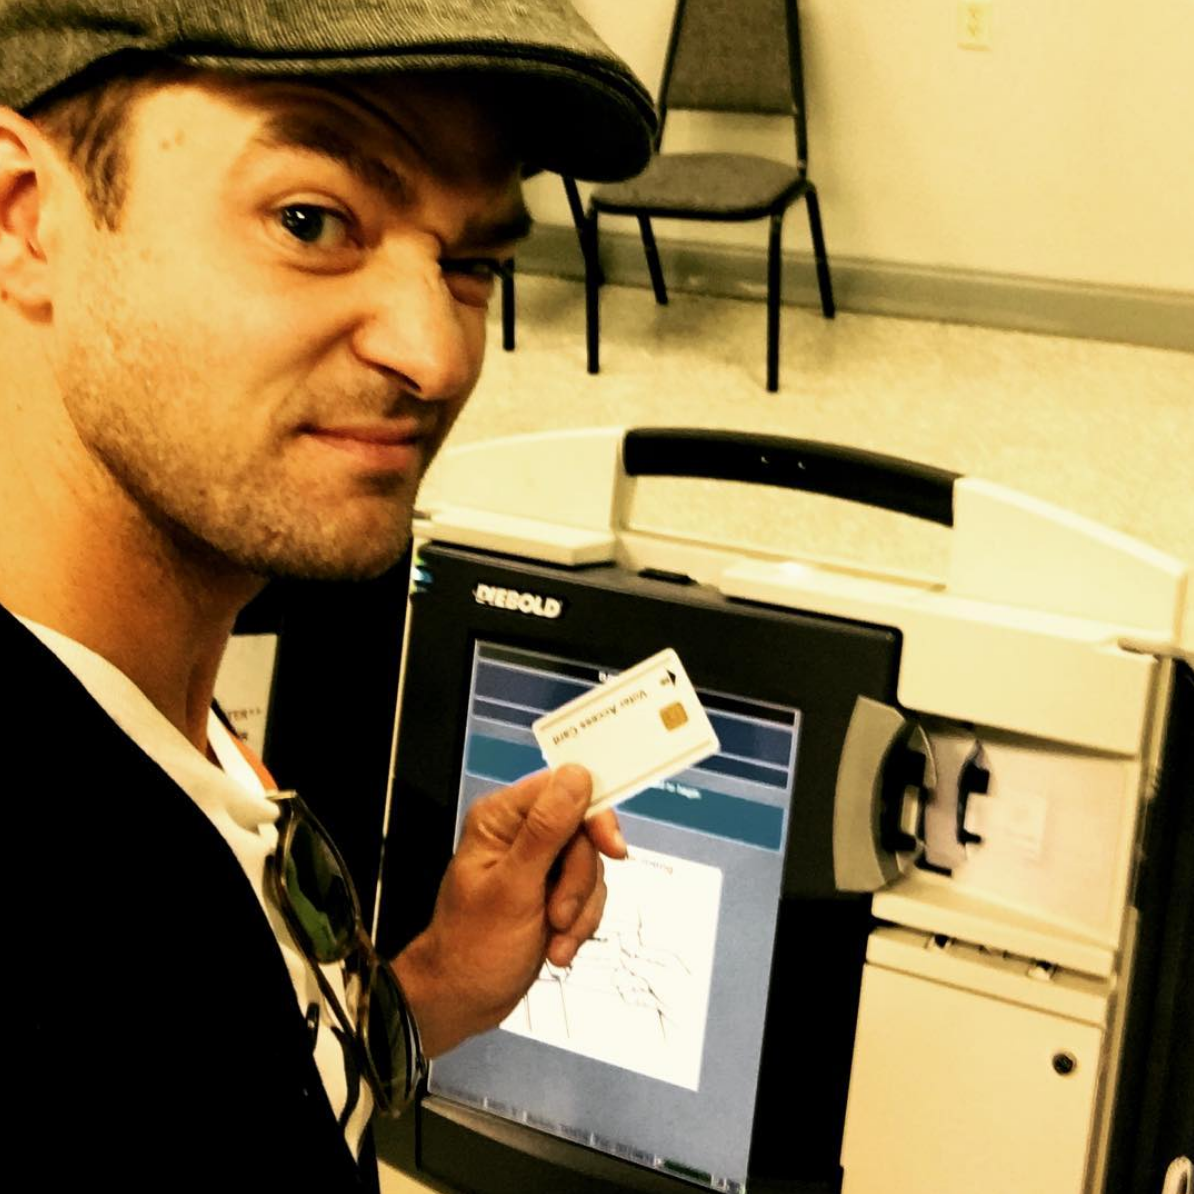 Justin Timberlake could go to jail for taking a selfie in the voting booth.